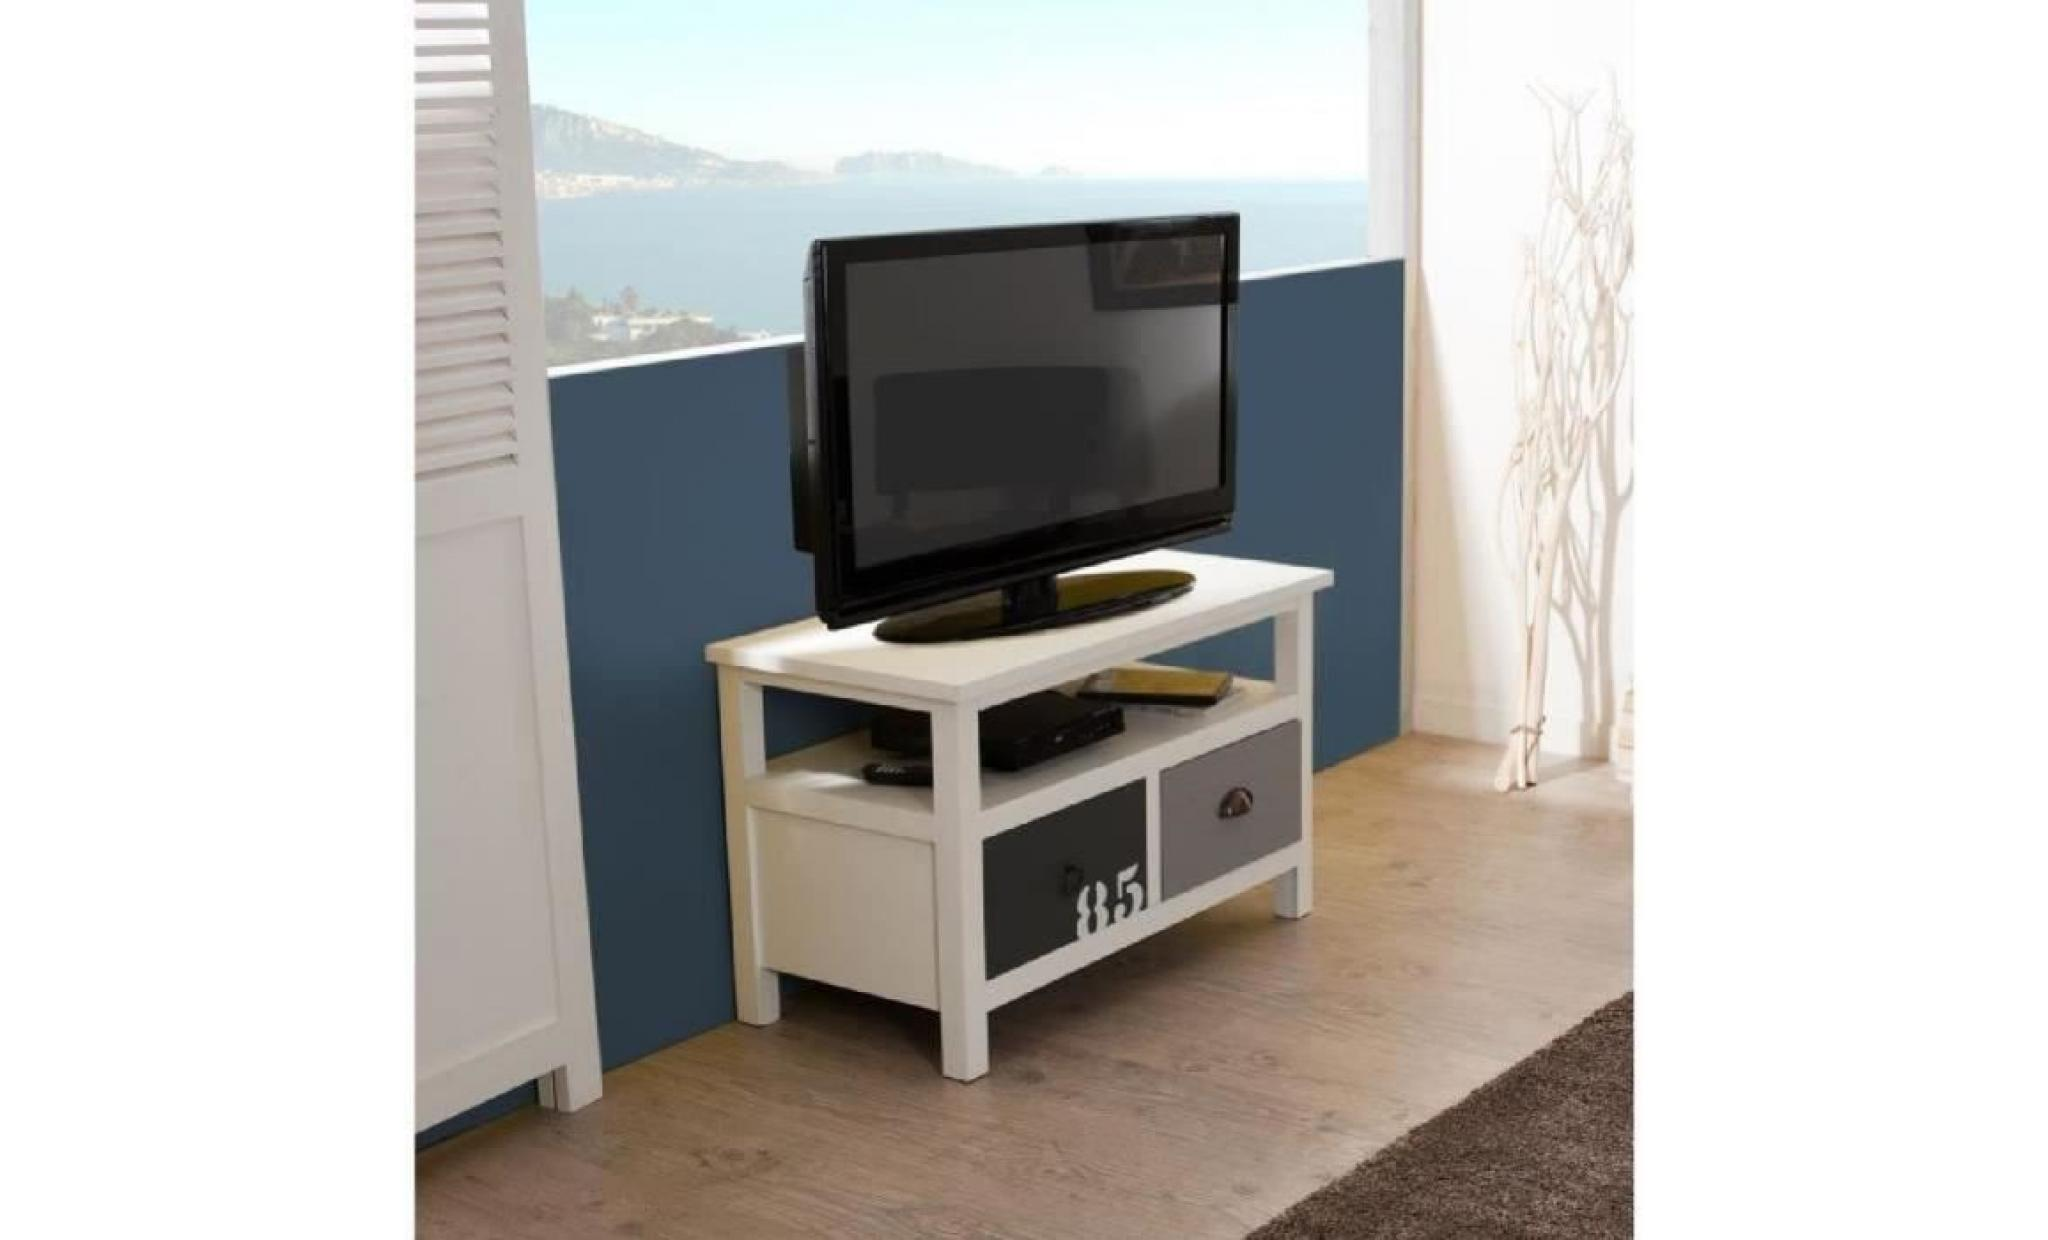 phuket meuble tv 2 tiroirs l80cm sapin mdf achat vente. Black Bedroom Furniture Sets. Home Design Ideas